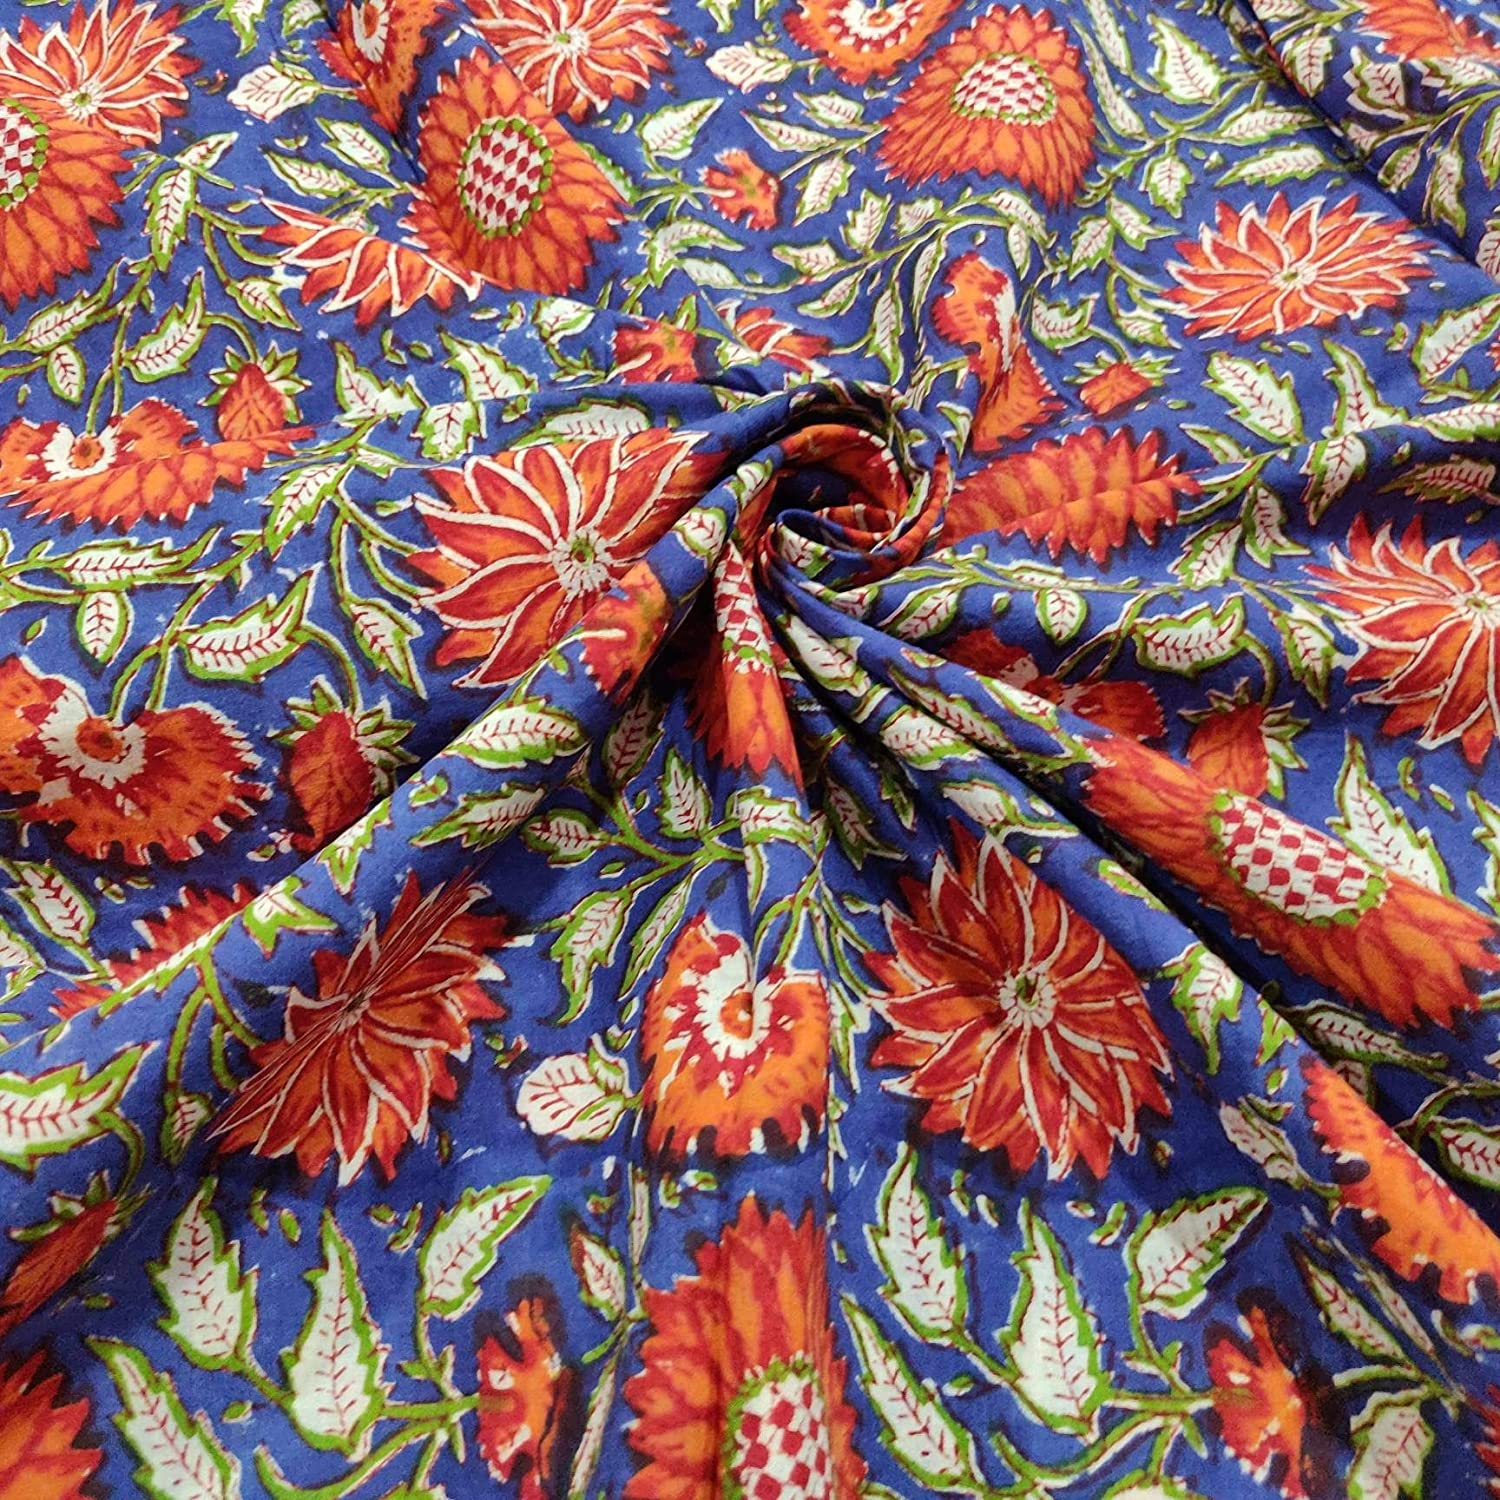 Block Print Cotton Fabric Cotton fabric by the 5 yard  Indian Cotton Fabric for summer dresses Quilting Fabric Hand screen Printed Fabric